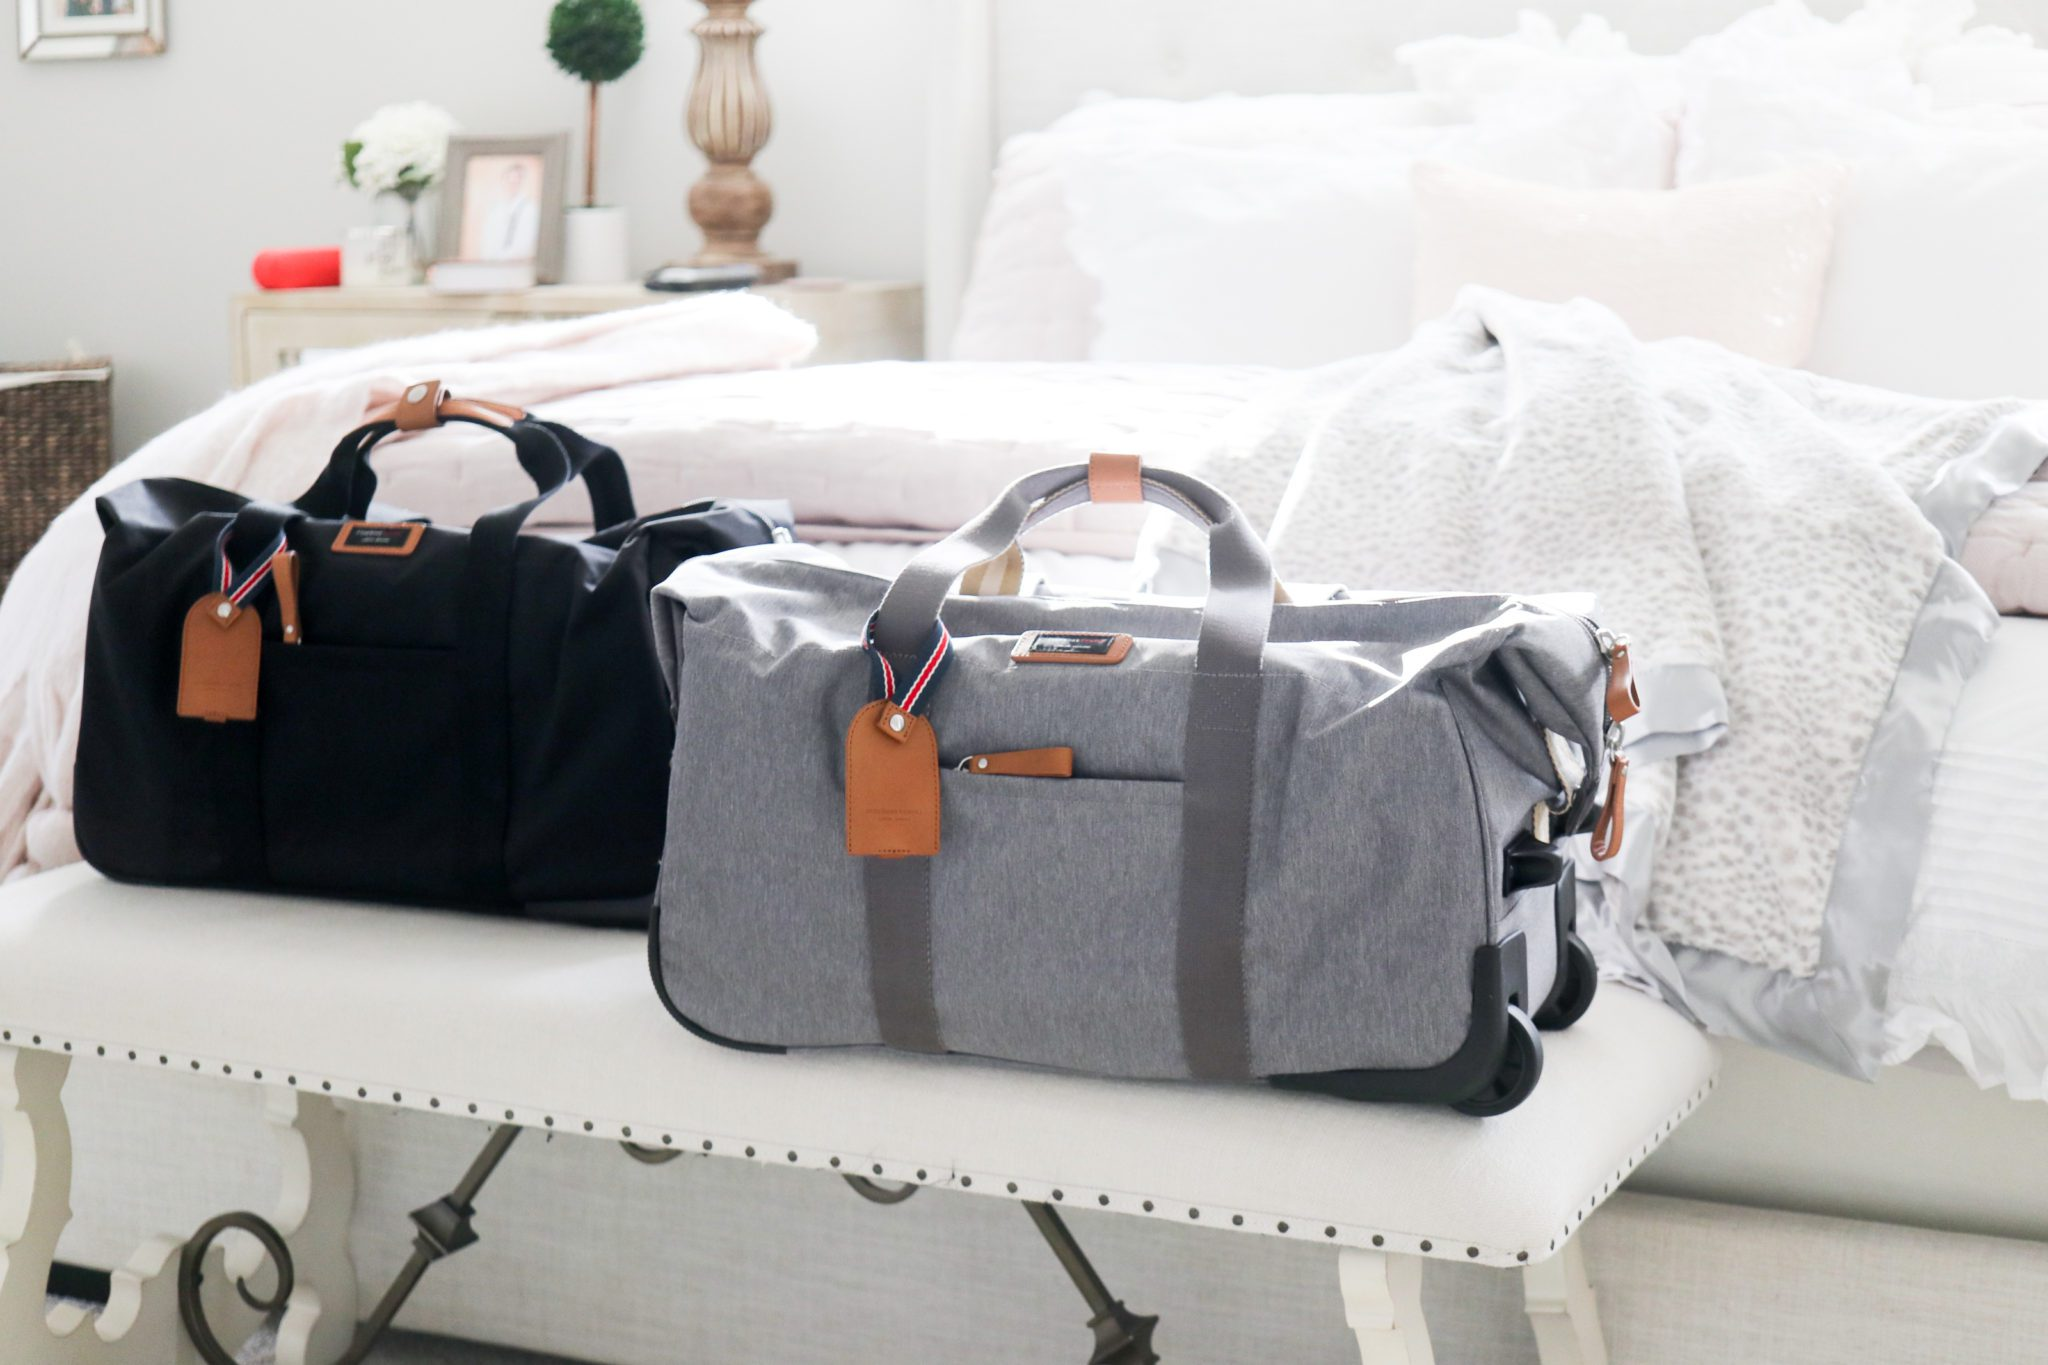 Here is a list of my top 10 hospital bag must haves!